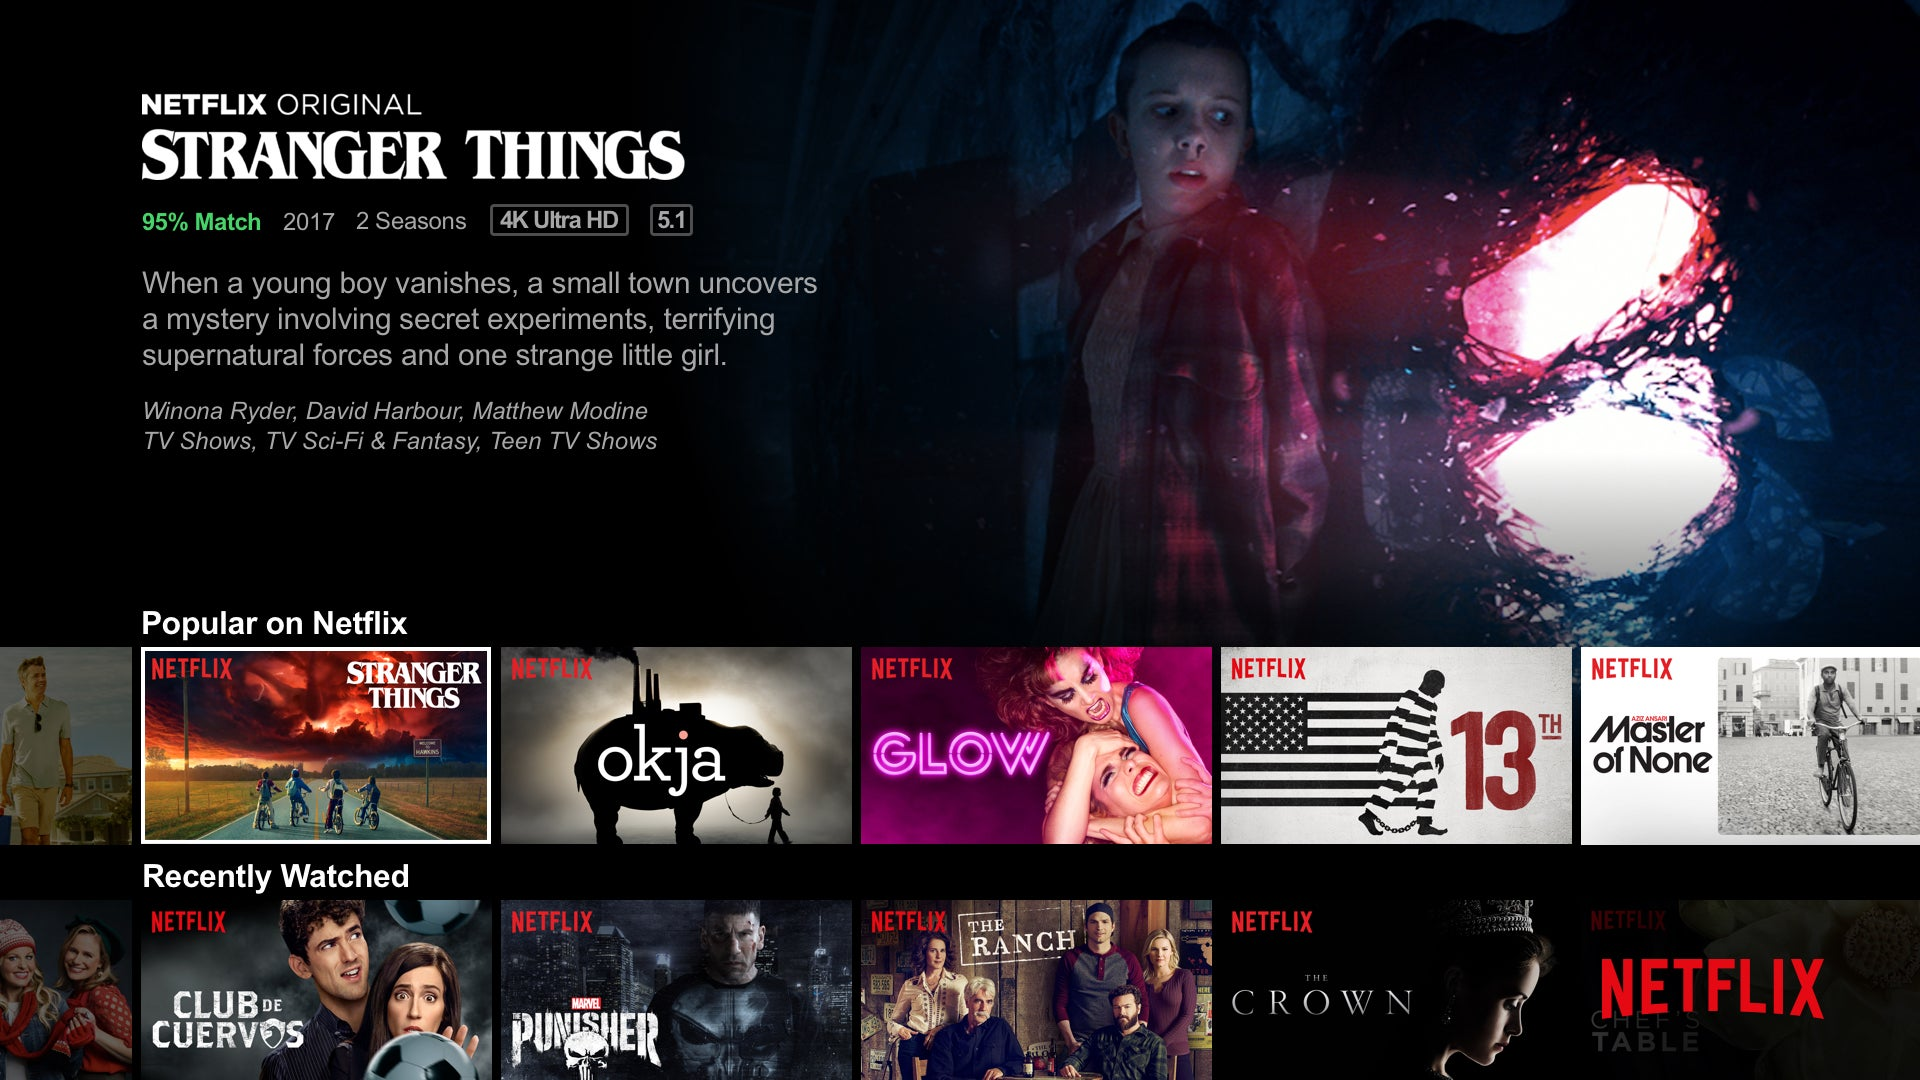 Netflixs 8 Billion Content Budget To Fund 700 Tv Shows And Movies  The Motley Fool-3040